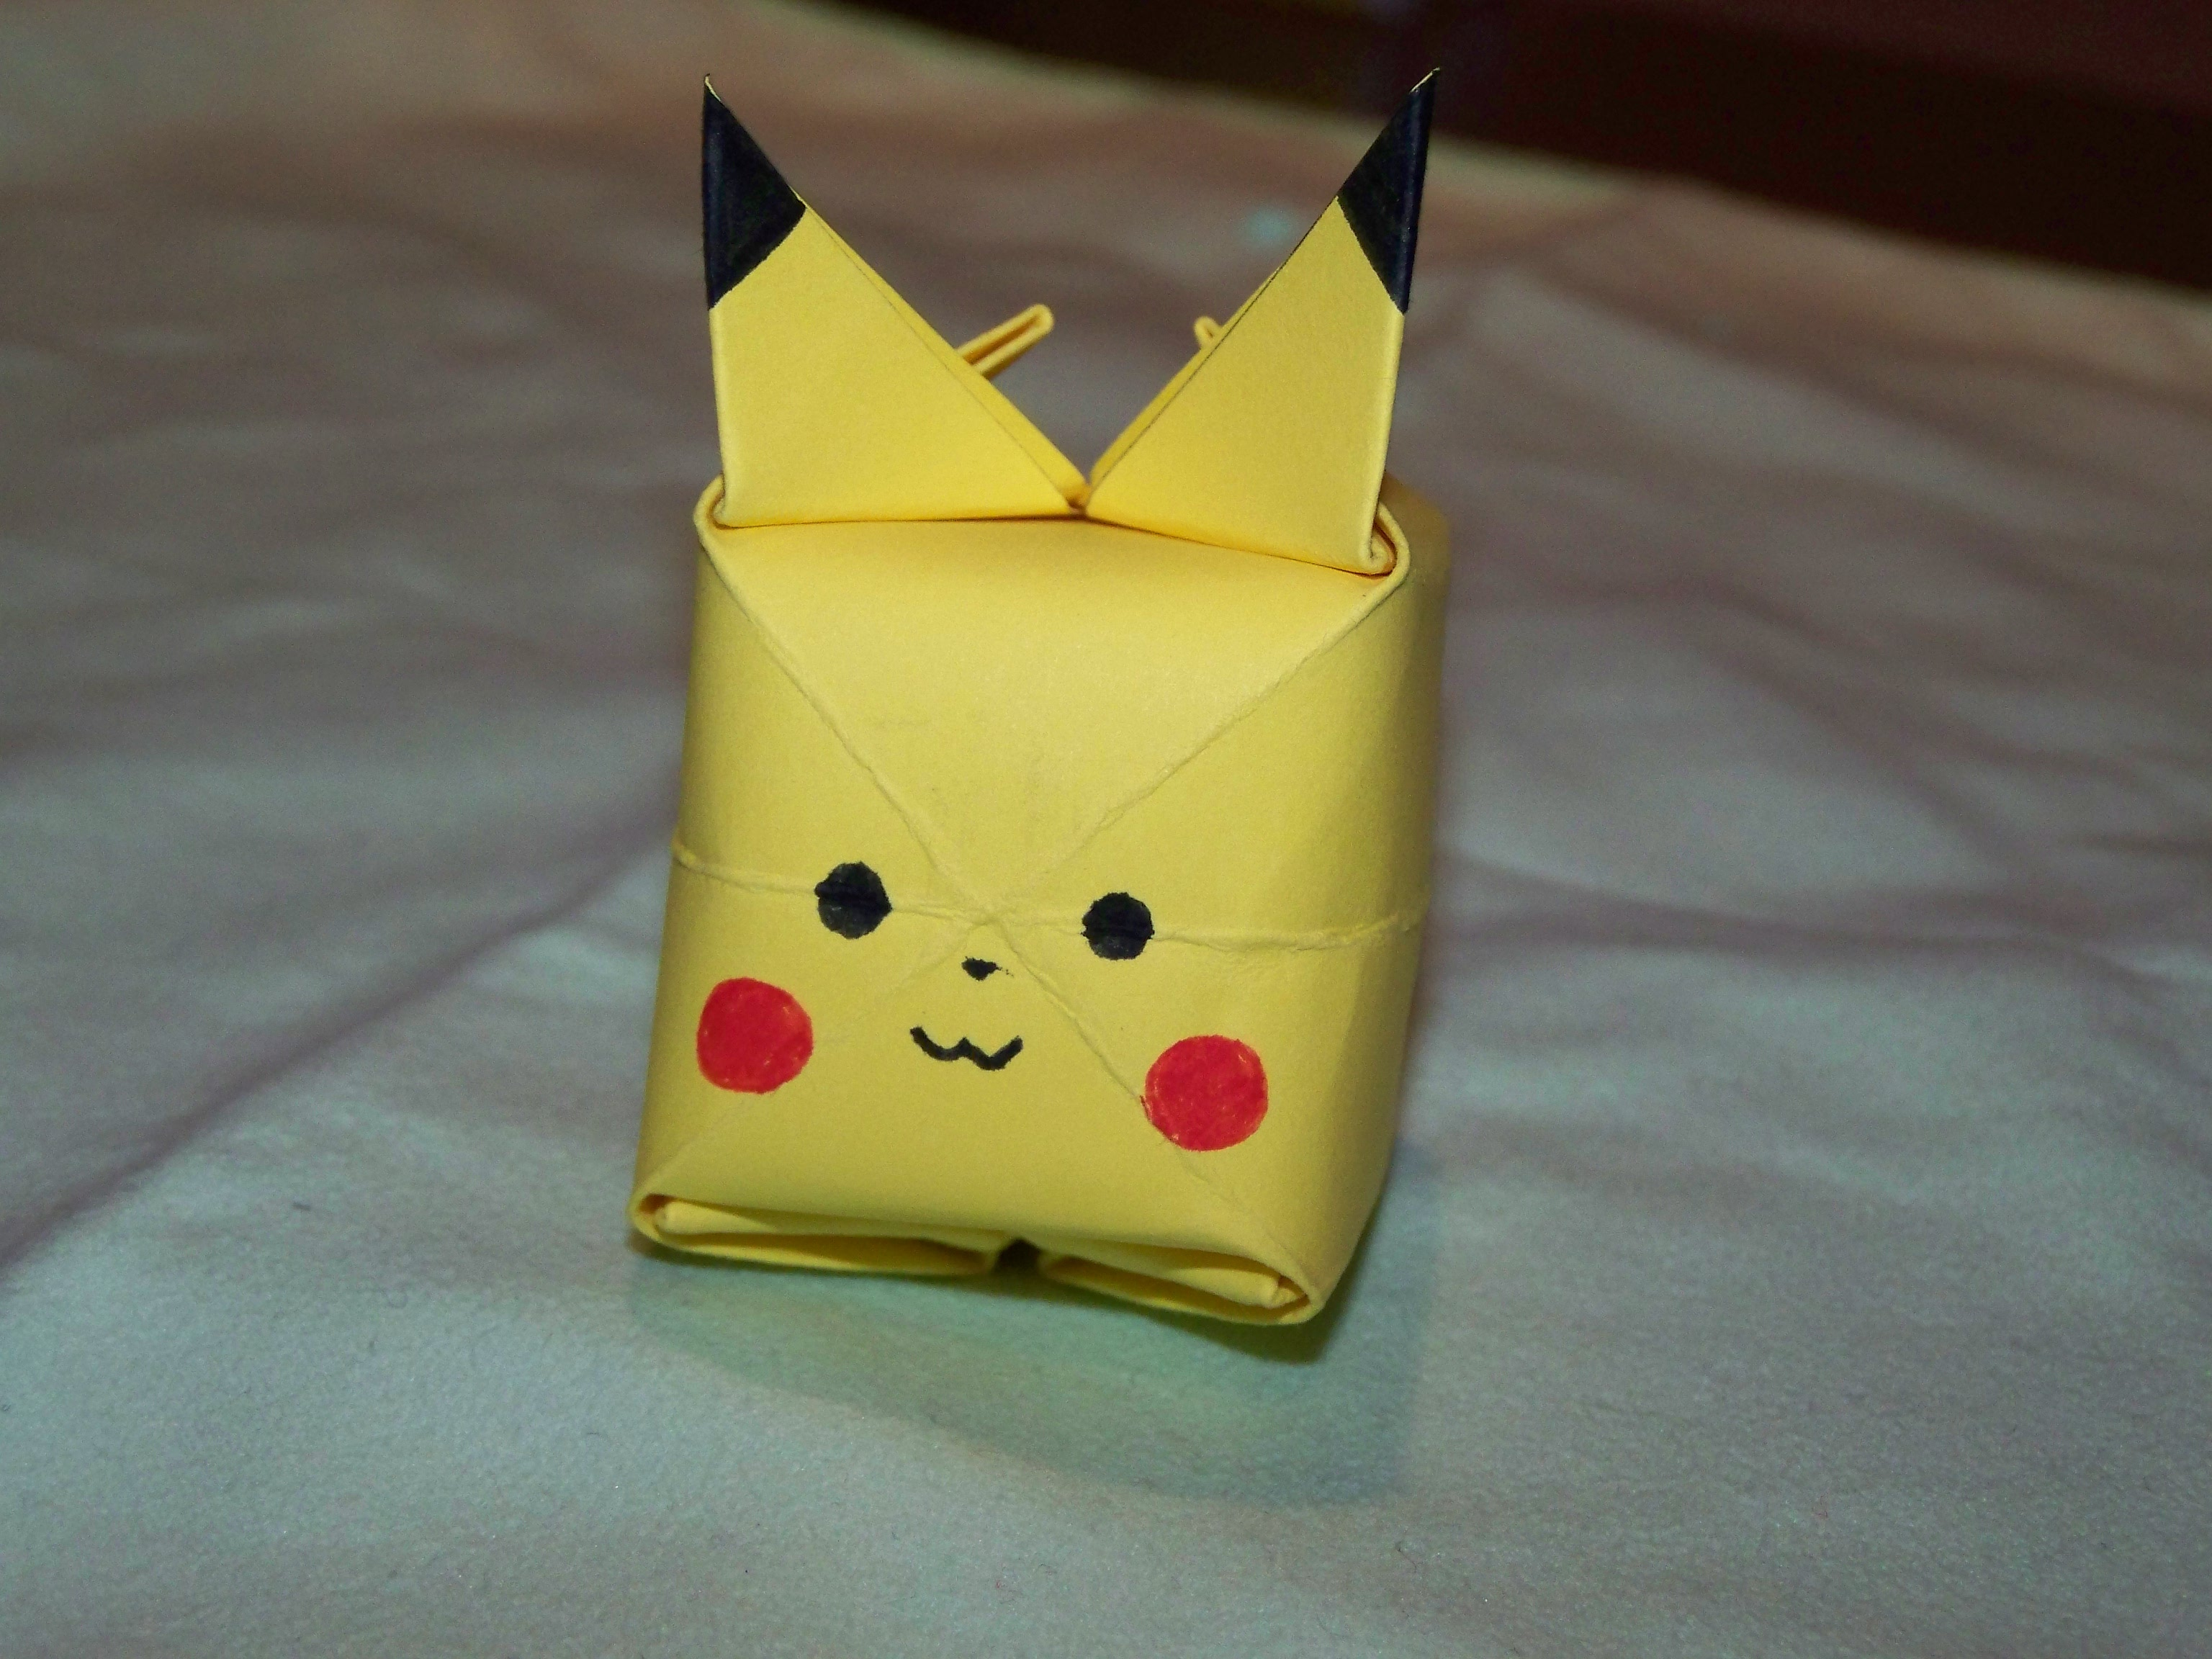 how to create an origami pikachu from a postit note